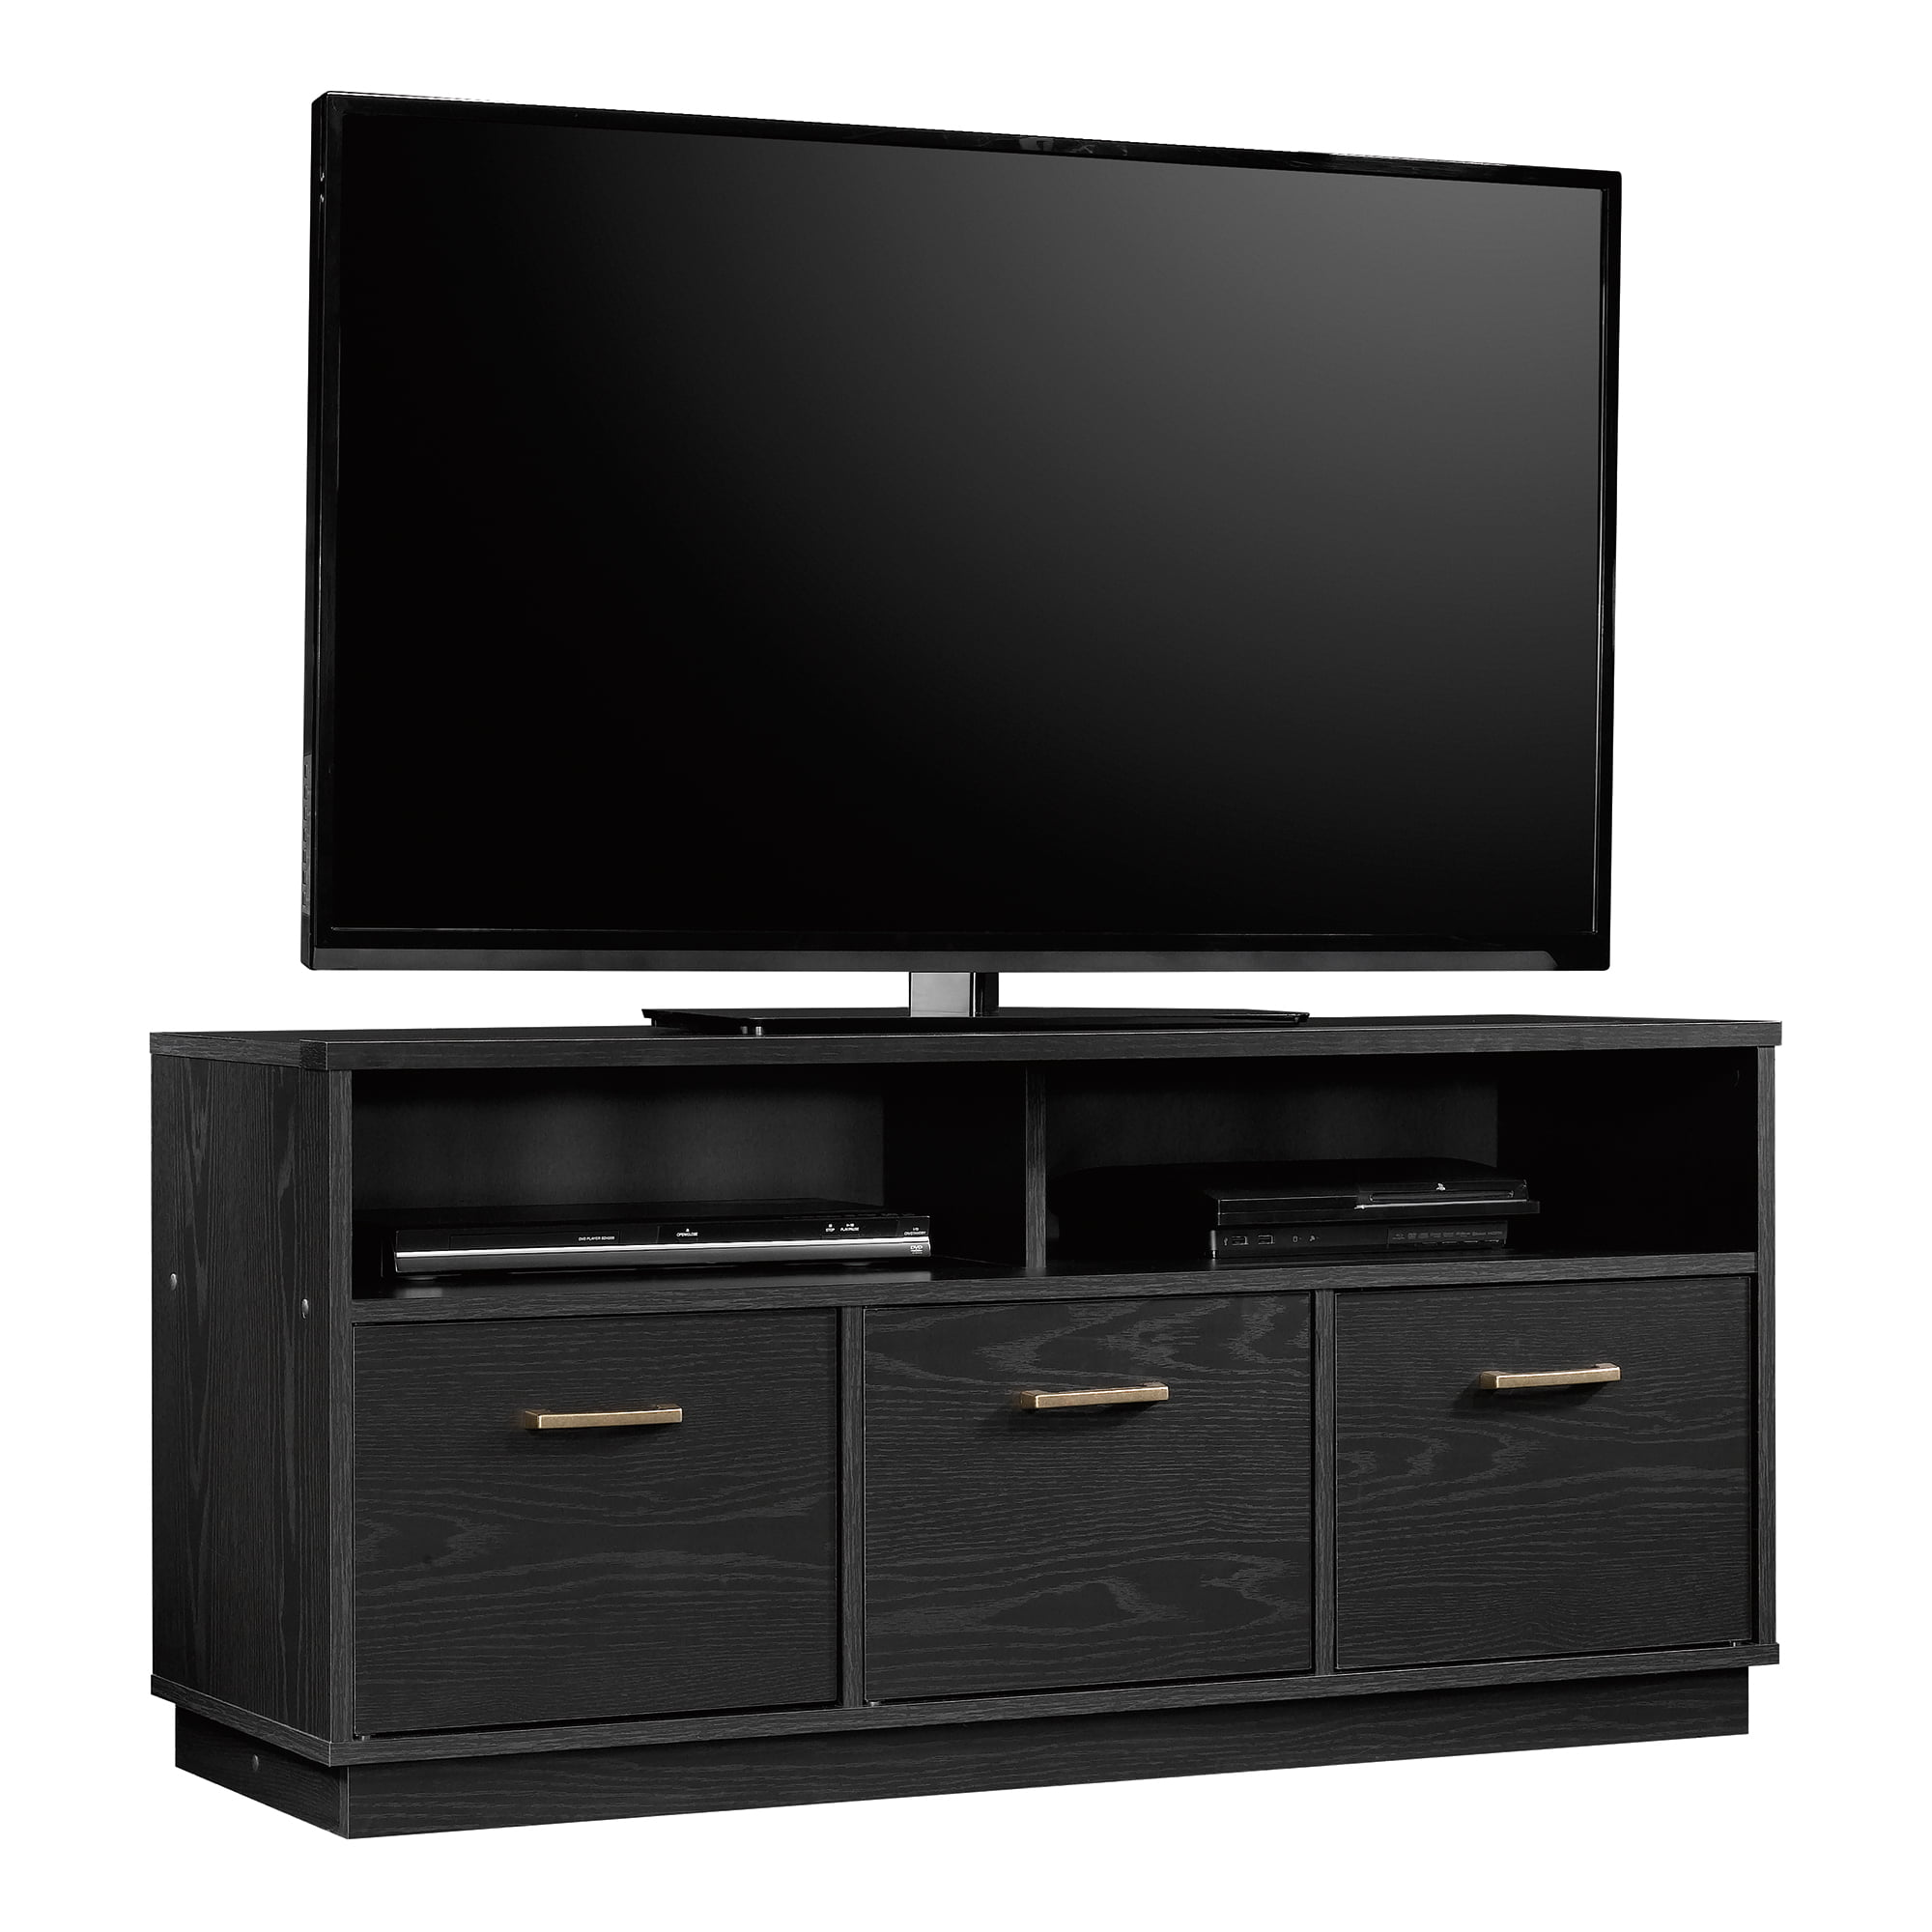 Modern tv stand console with gold accents for tvs up to 50